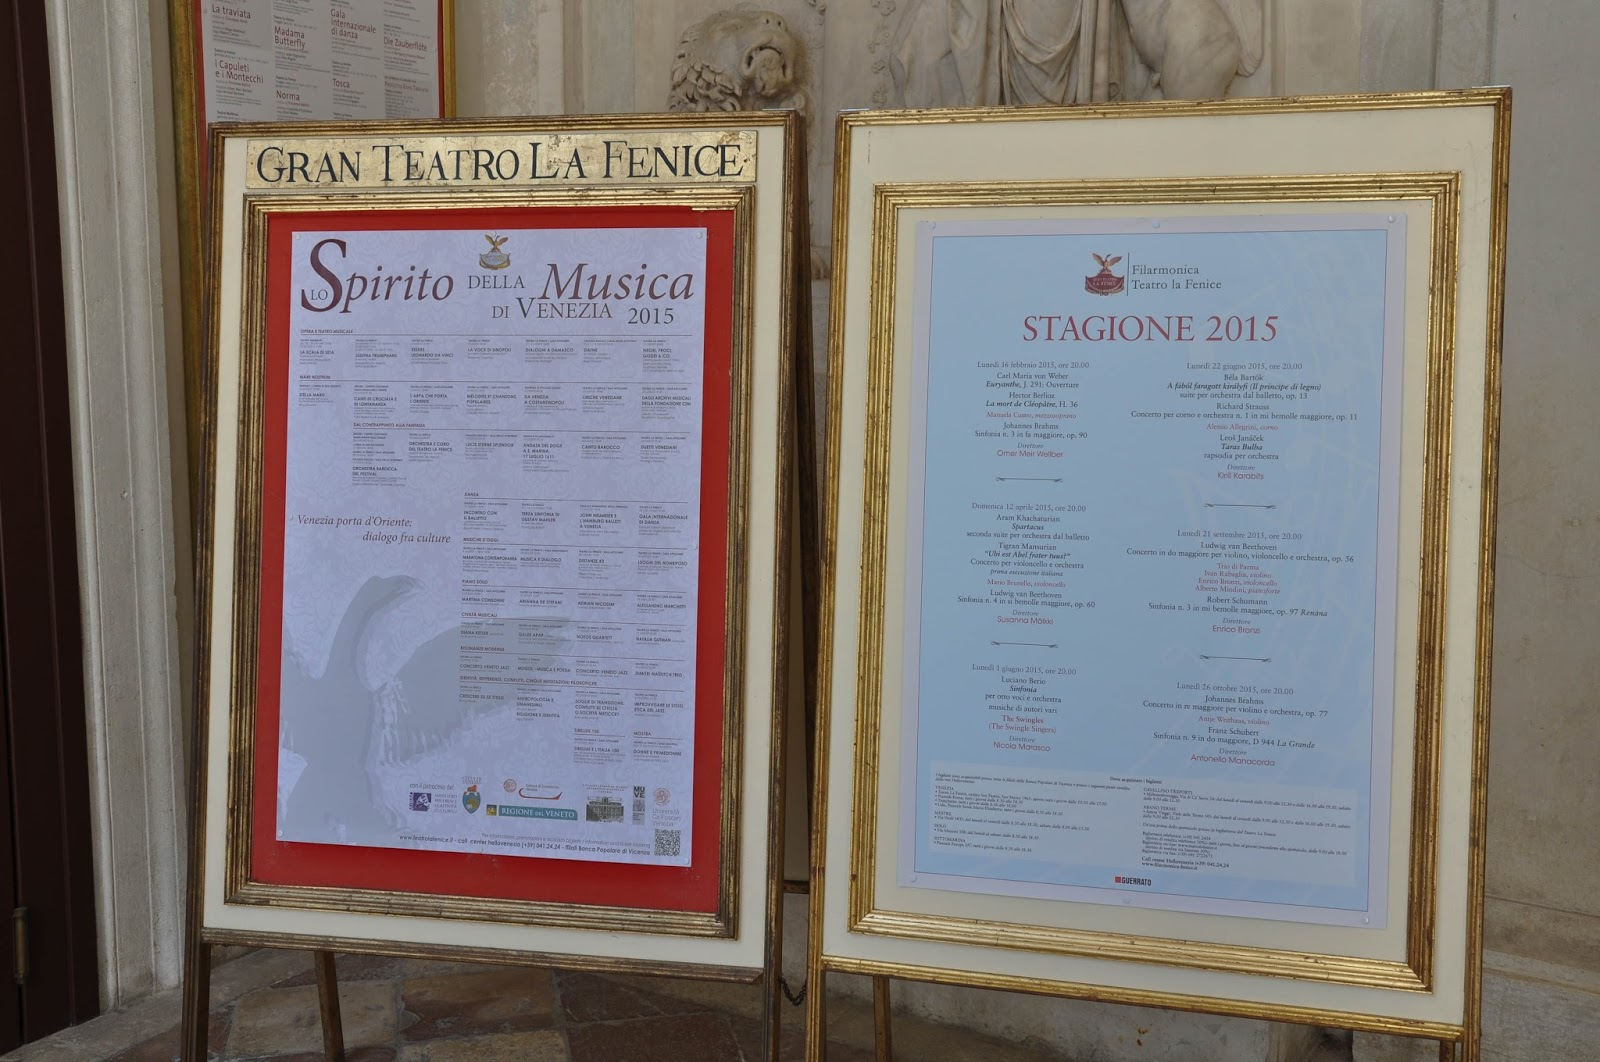 The programme for Season 2015, La Fenice, Venice, Italy